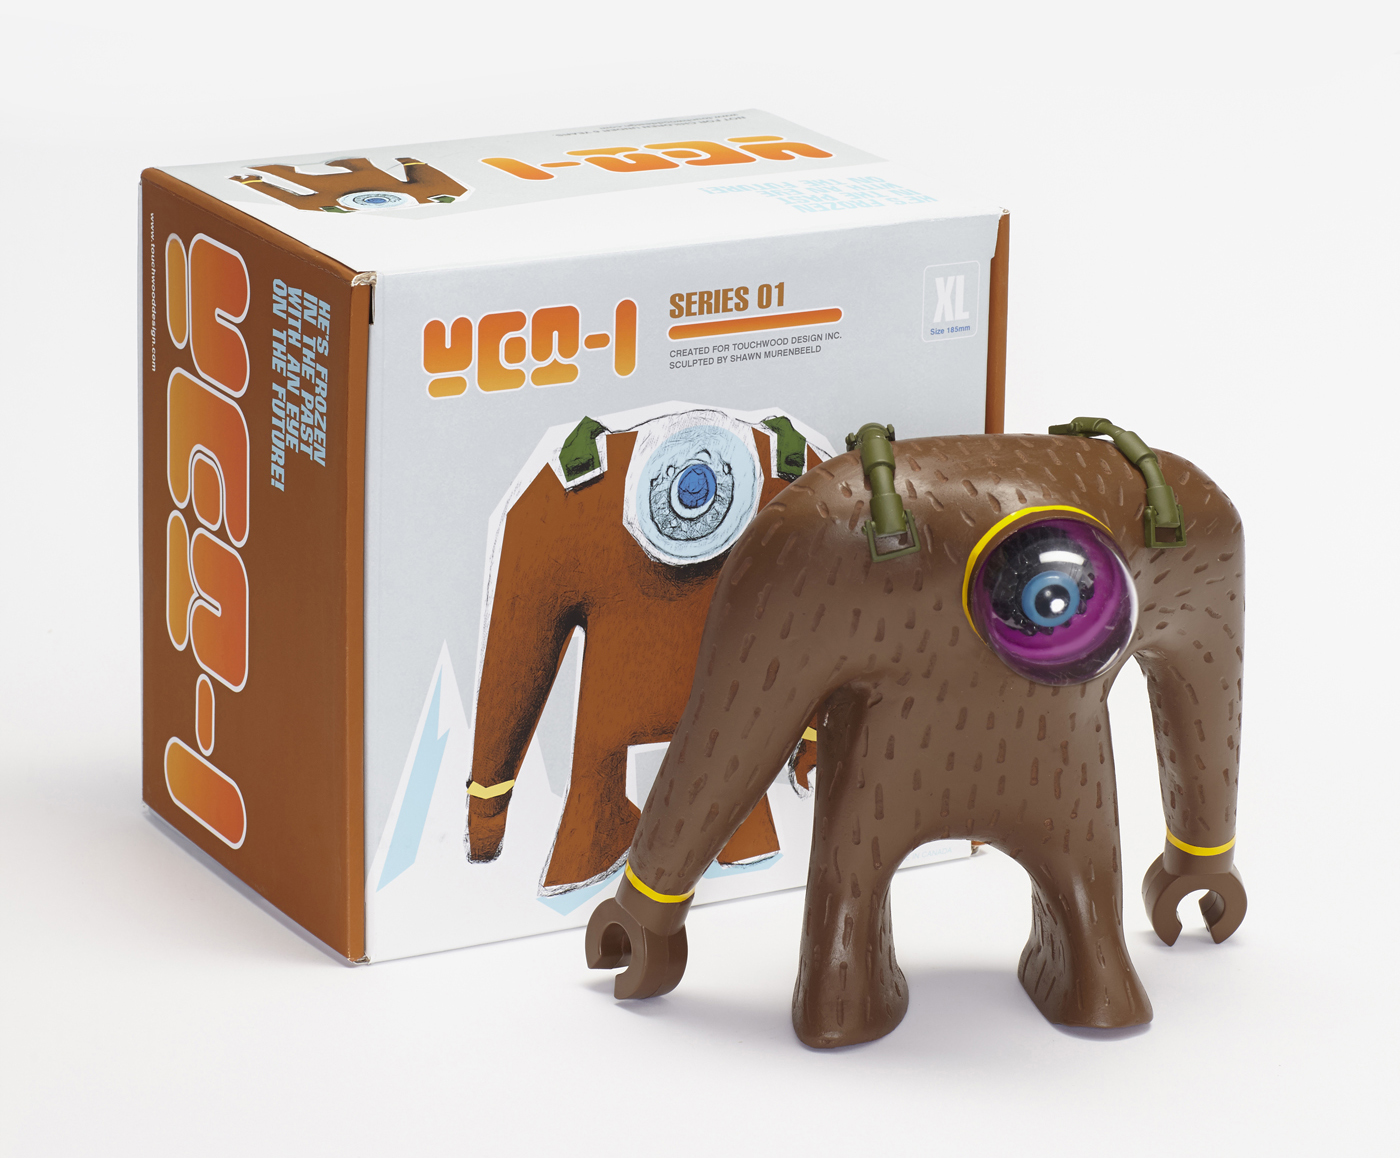 Yeti plaster figurine with package design.